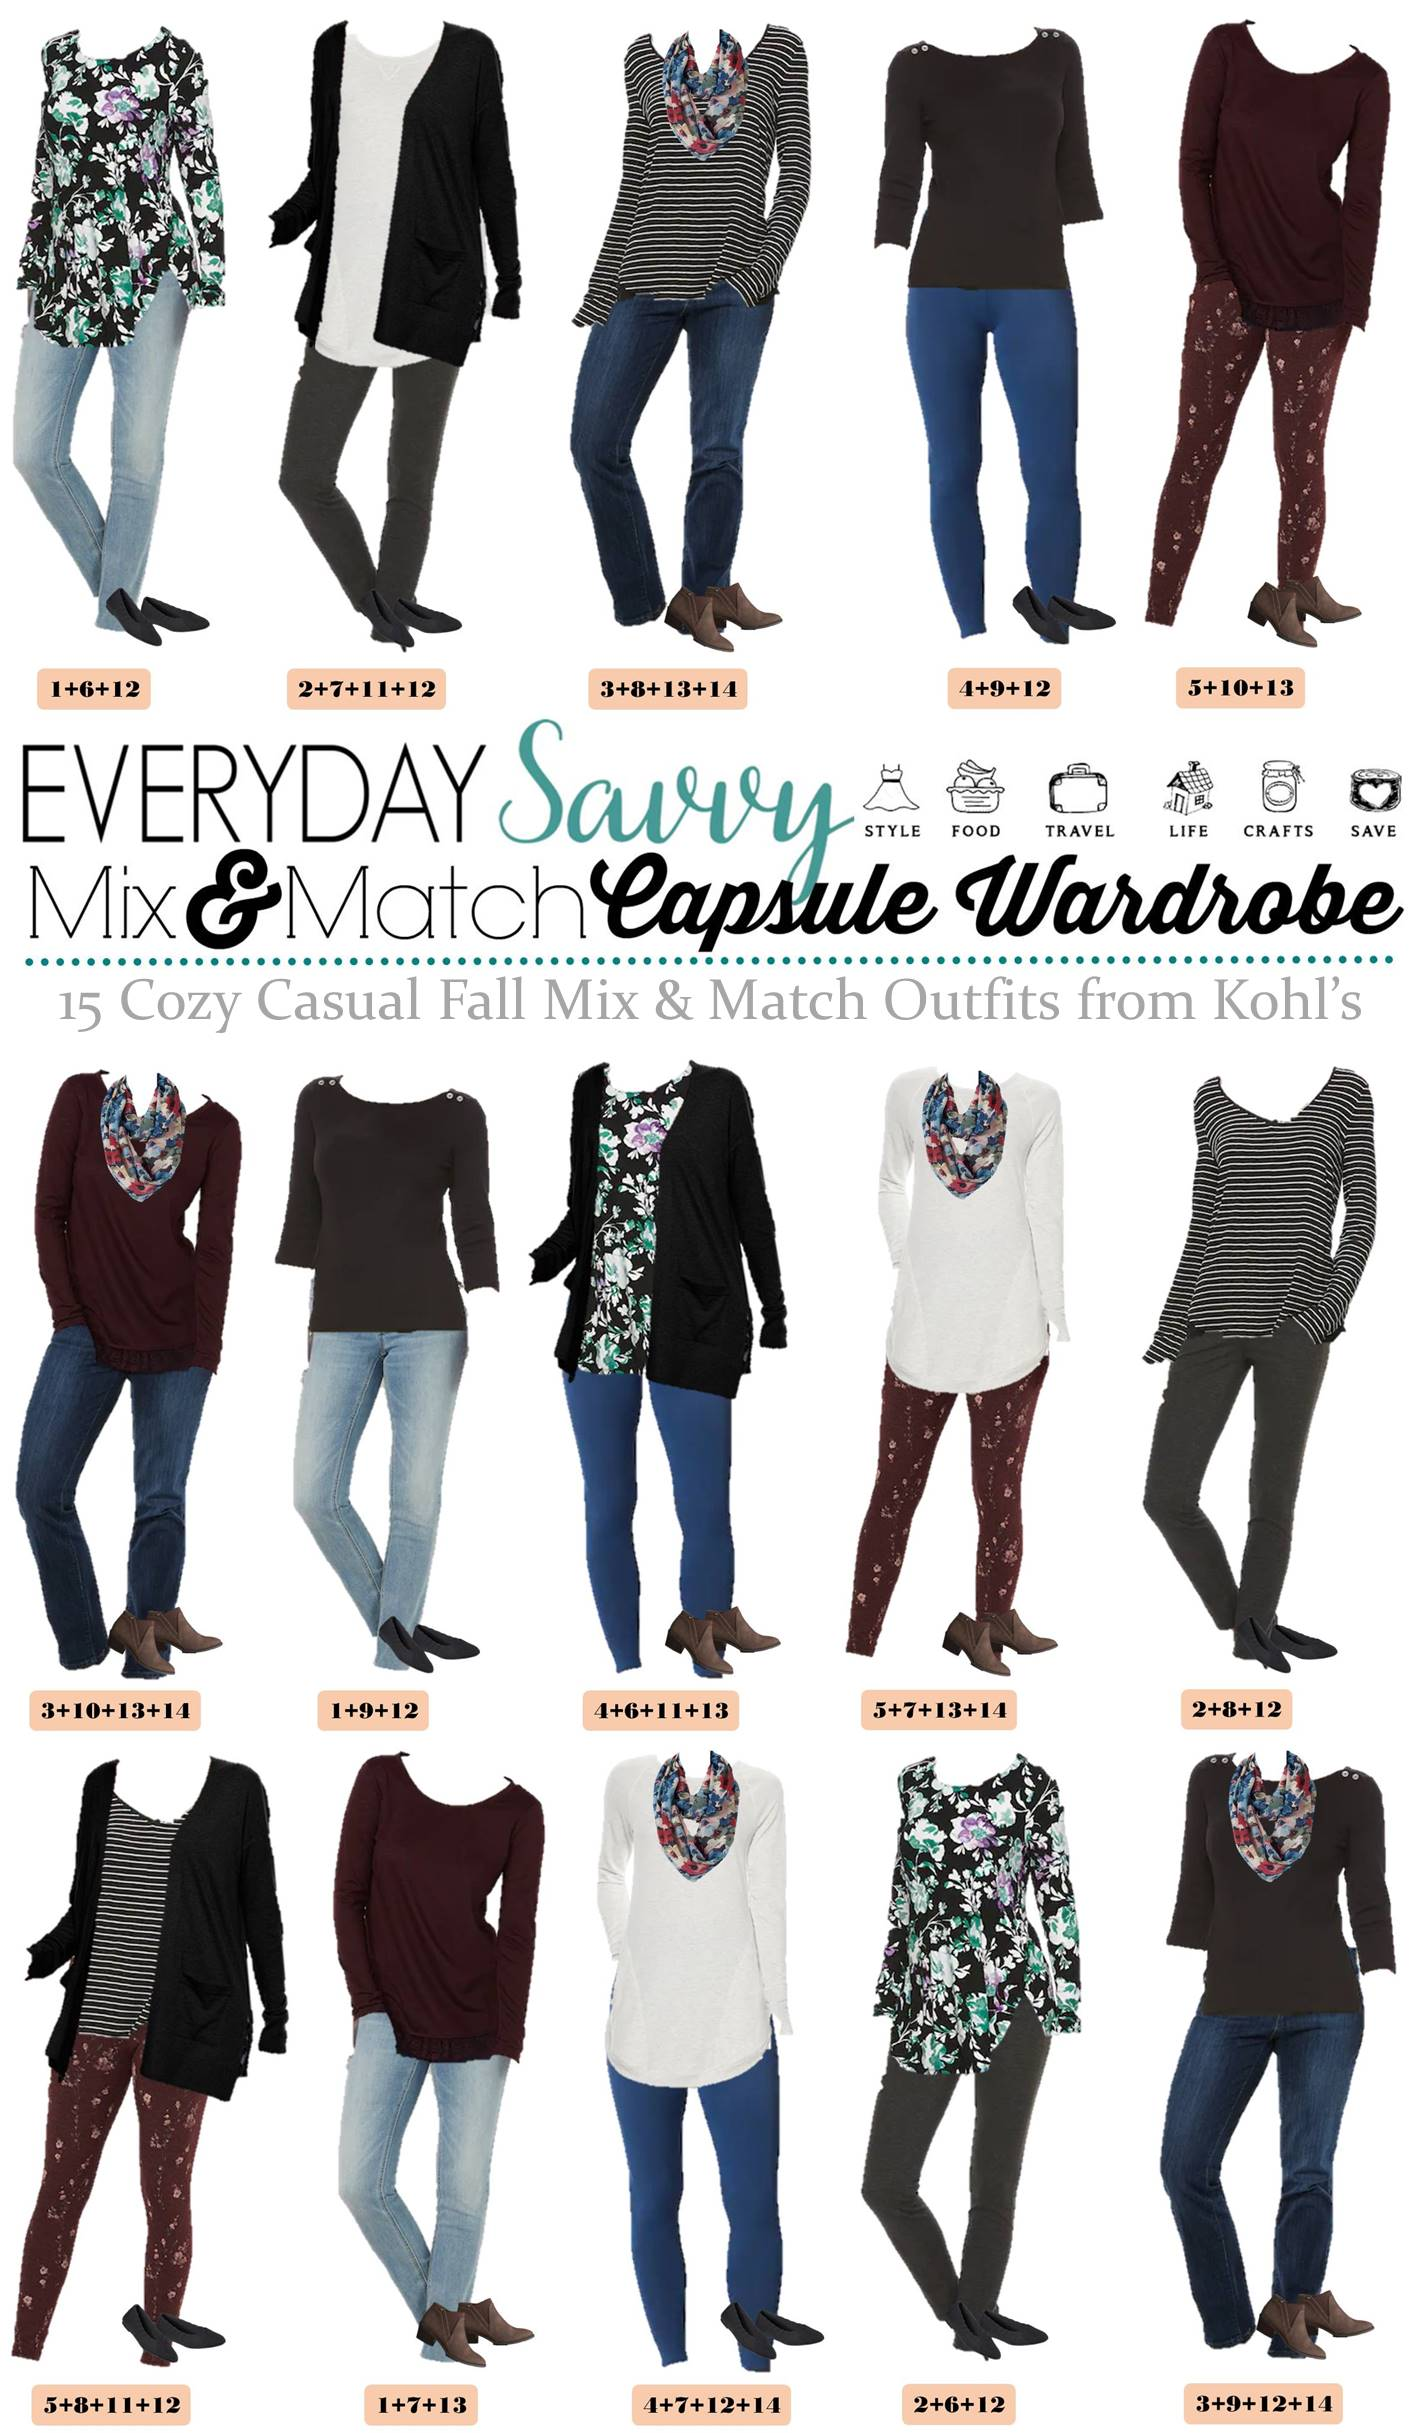 Life As We Know It Muslimah Clothing Fashion Tips: 15 Mix And Match Cozy Casual Fall Outfits From Kohls